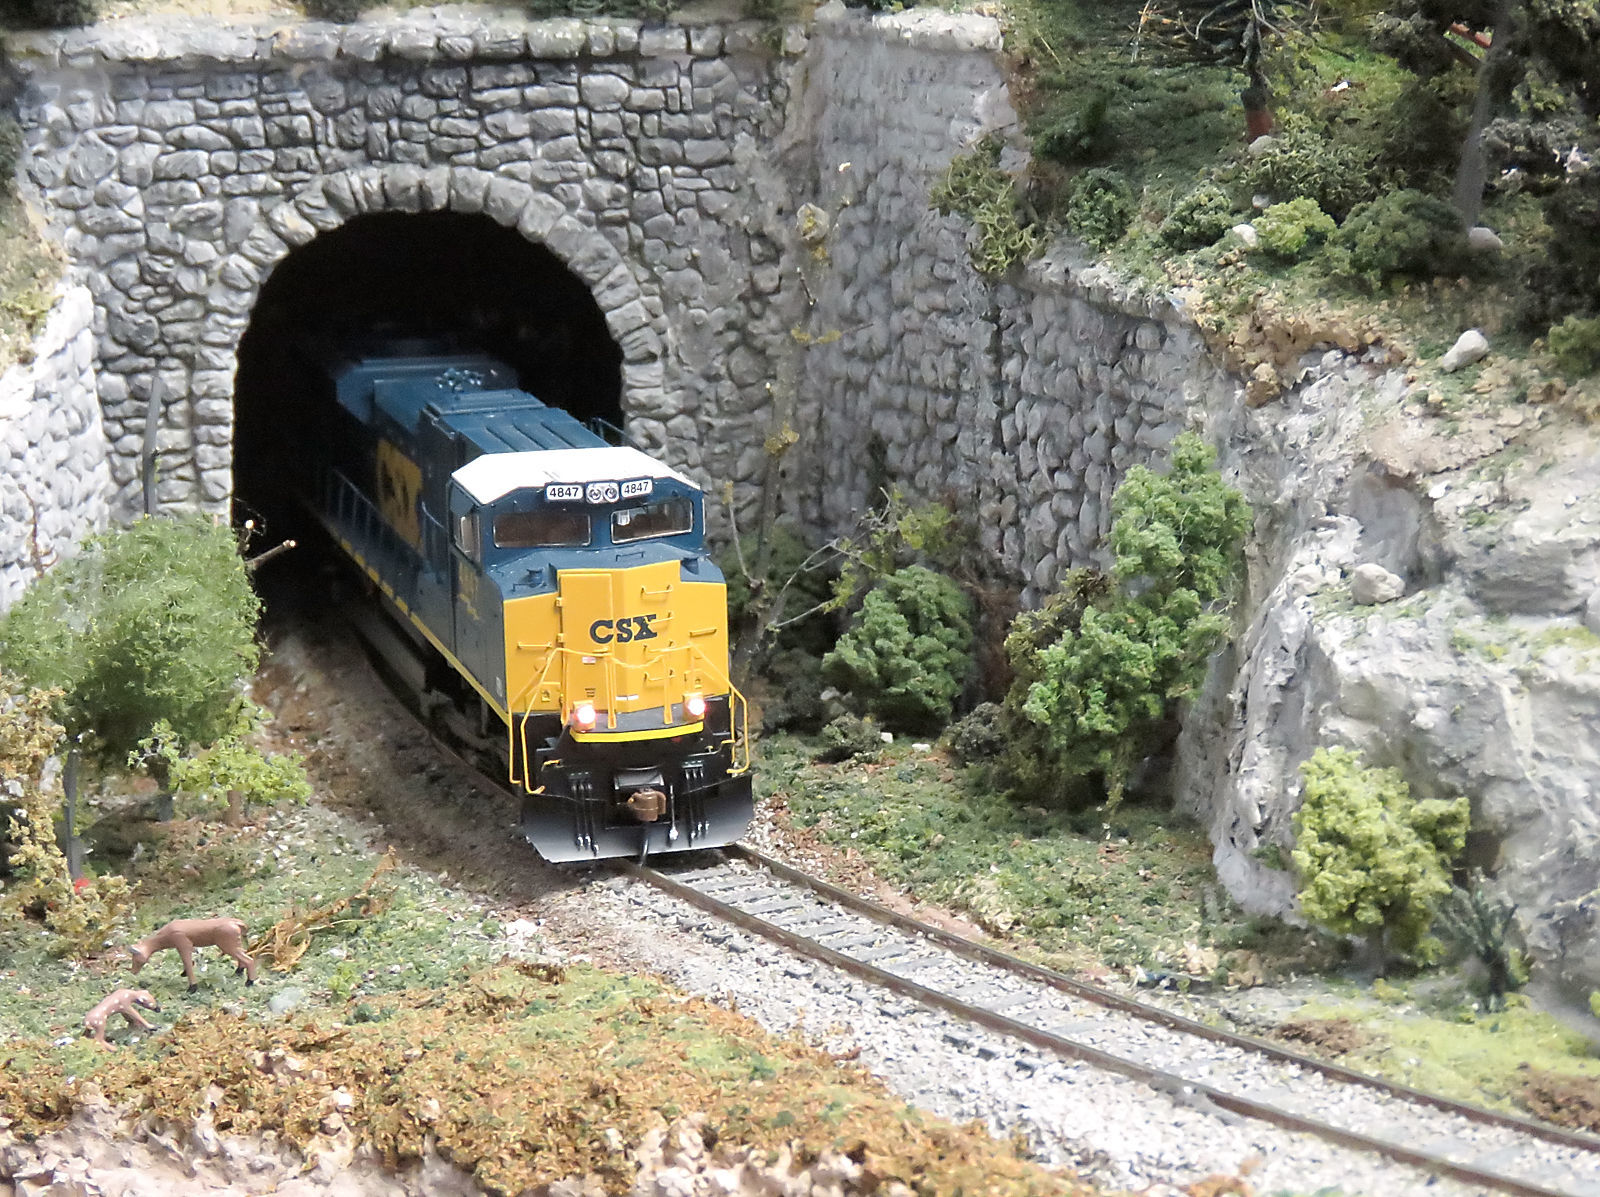 Maryville Model Railroad Club Displays Tiny Town At Blount County Historical Museum News Thedailytimes Com